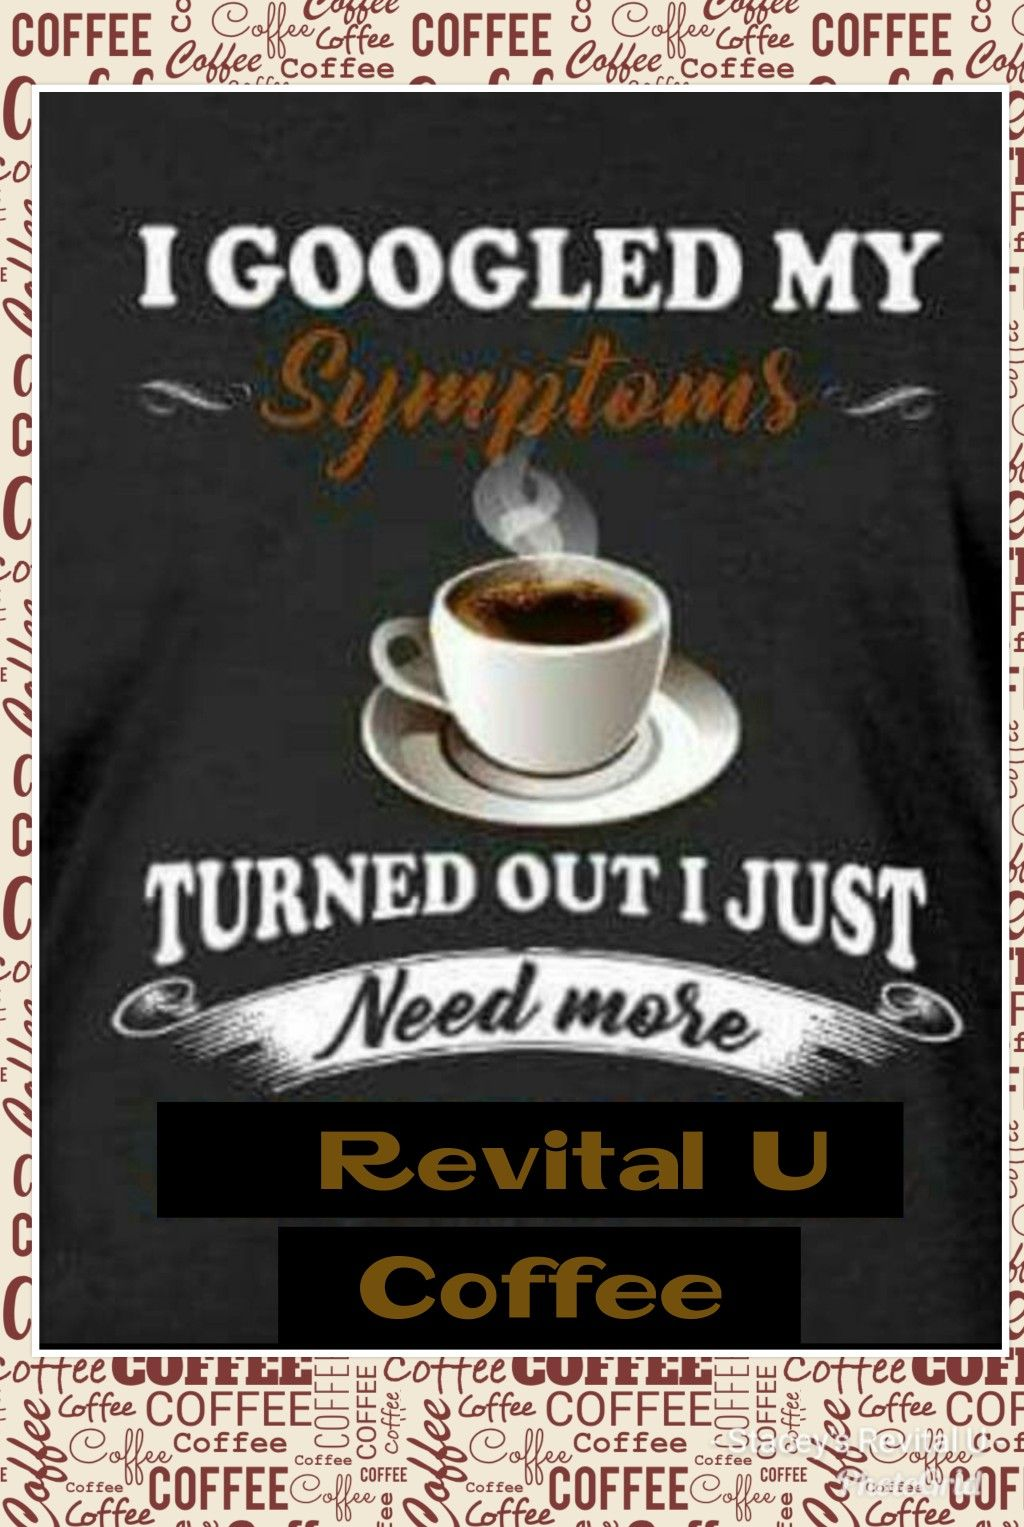 Pin by Stacey Hebb on Stacey's Revital U Brew Coffee